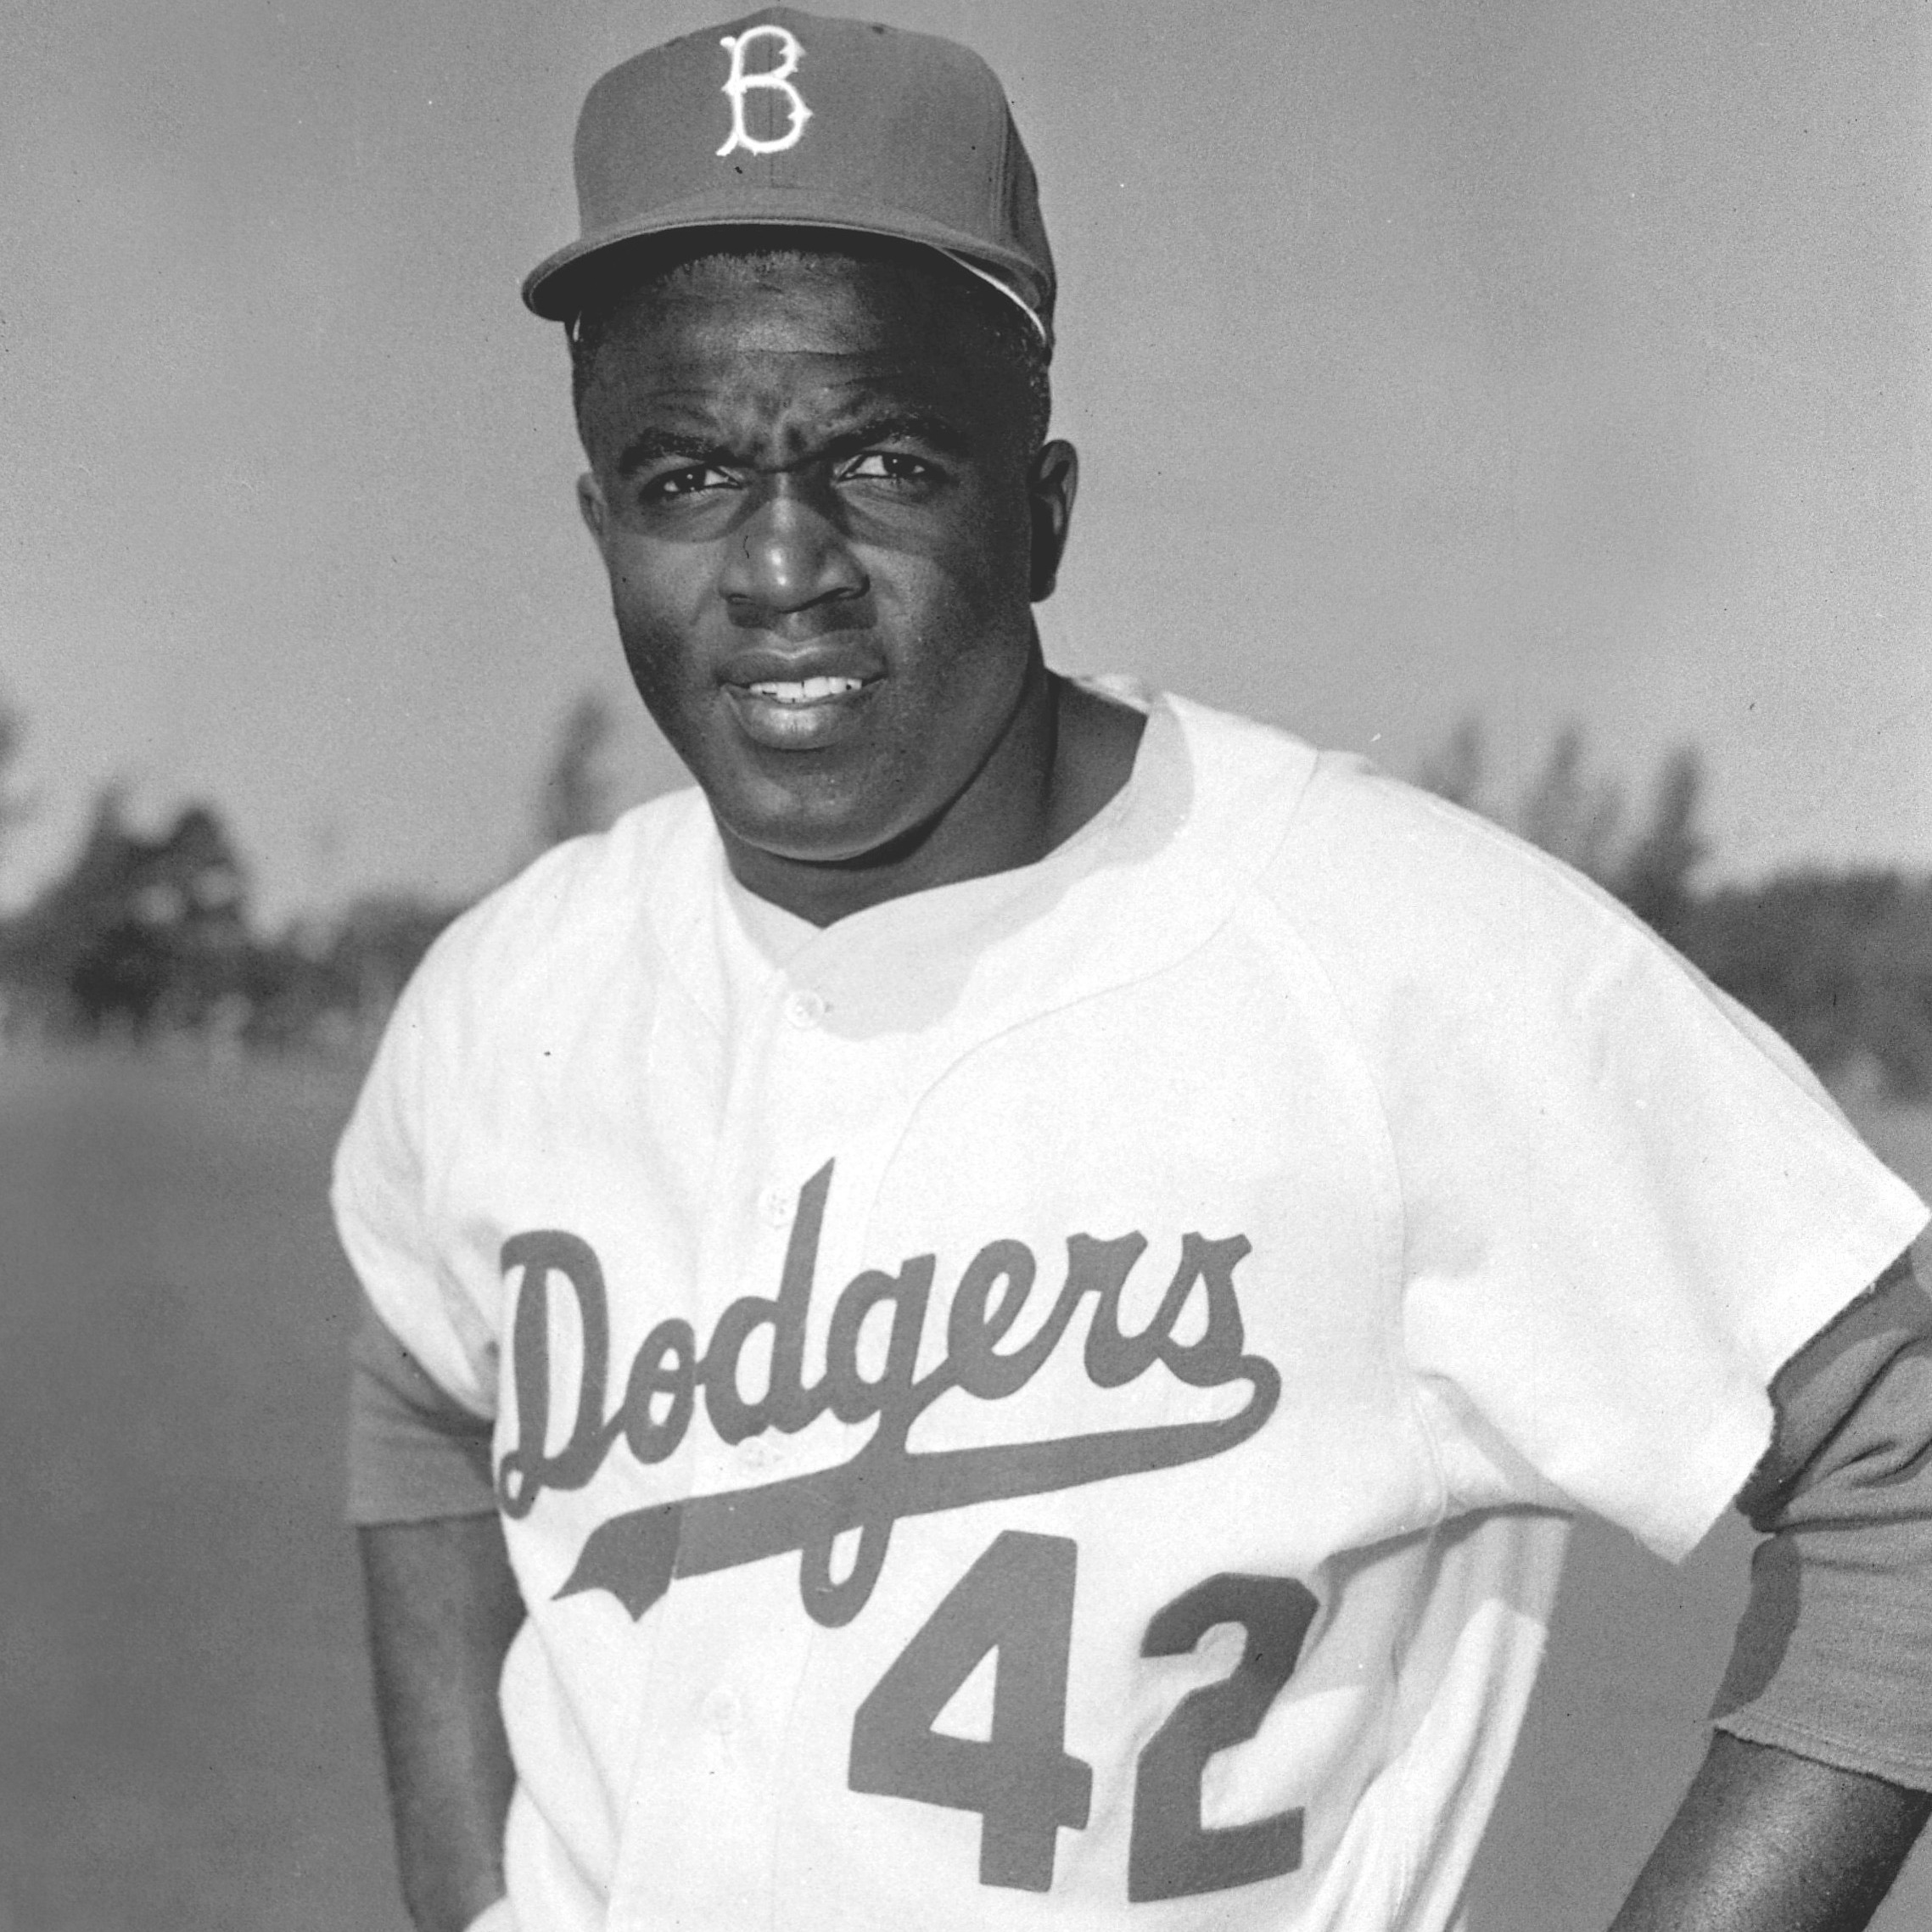 Decades after Jackie Robinson became the first black man to play an MLB game, African-Americans still make up only about 8 percent of all MLB players.